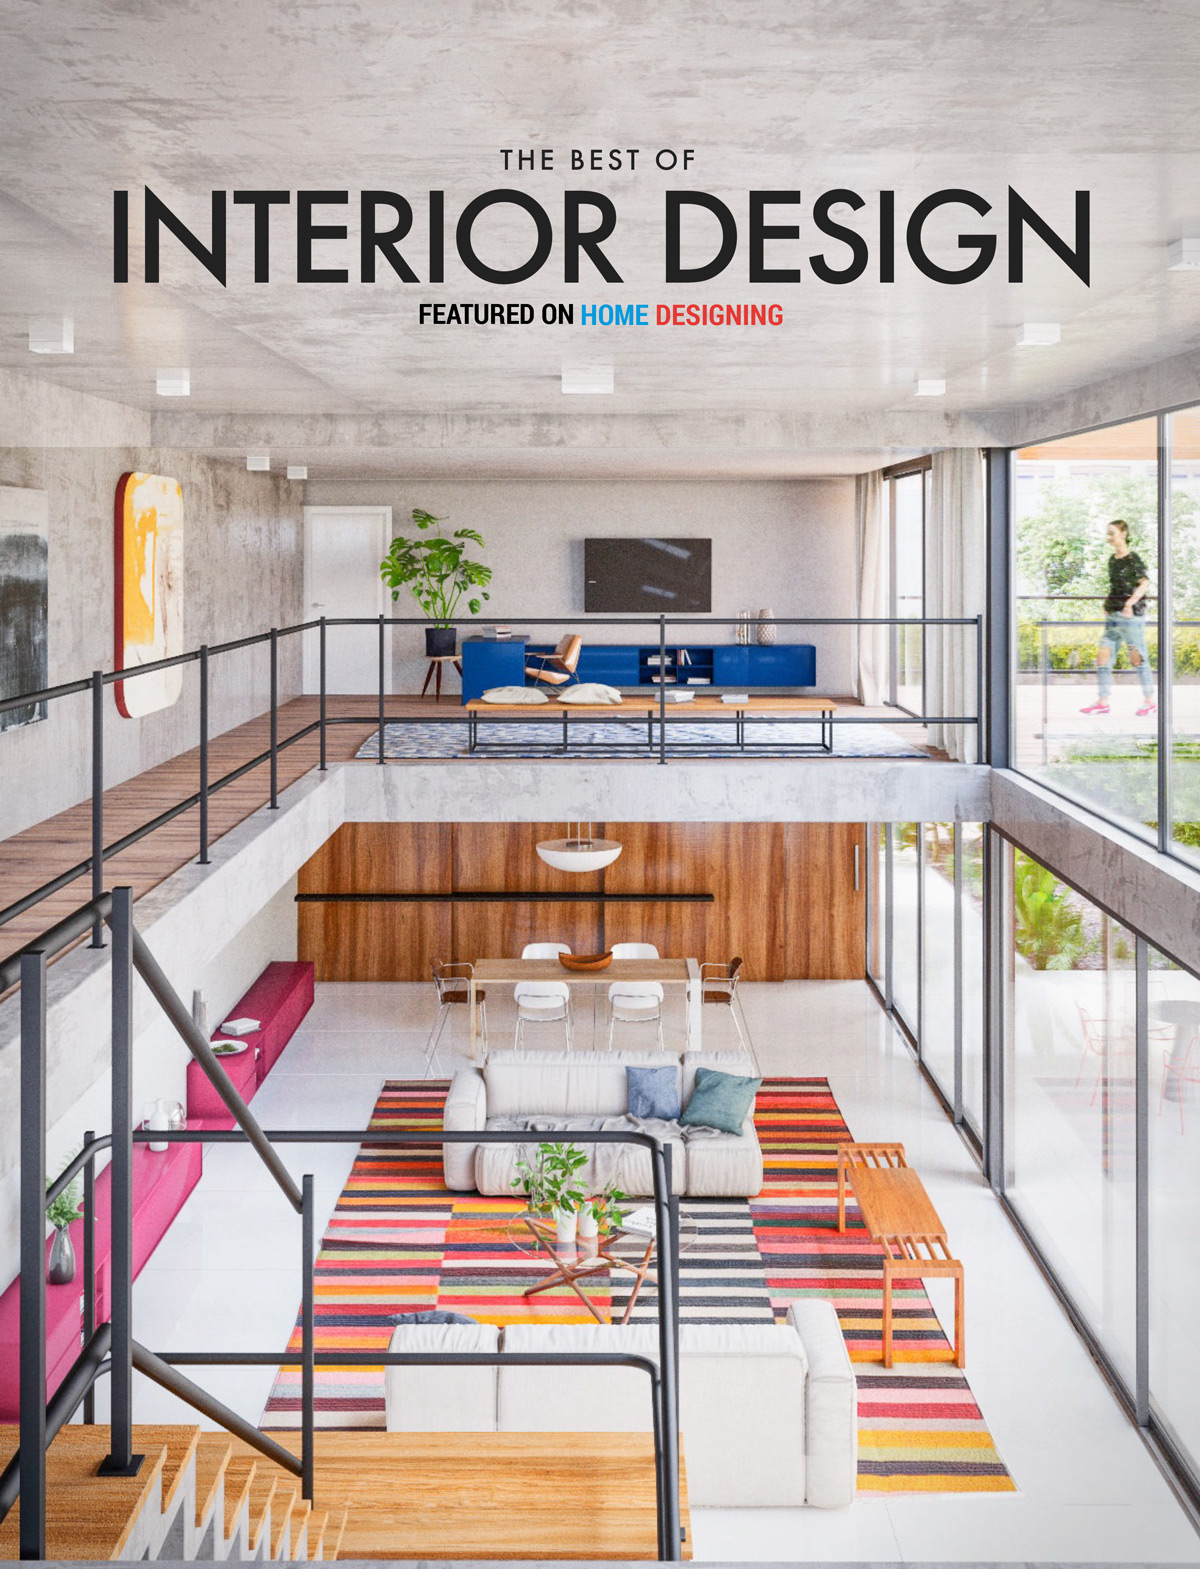 Free Interior Design Ebook The Best Of Interior Design Interior Design Ideas